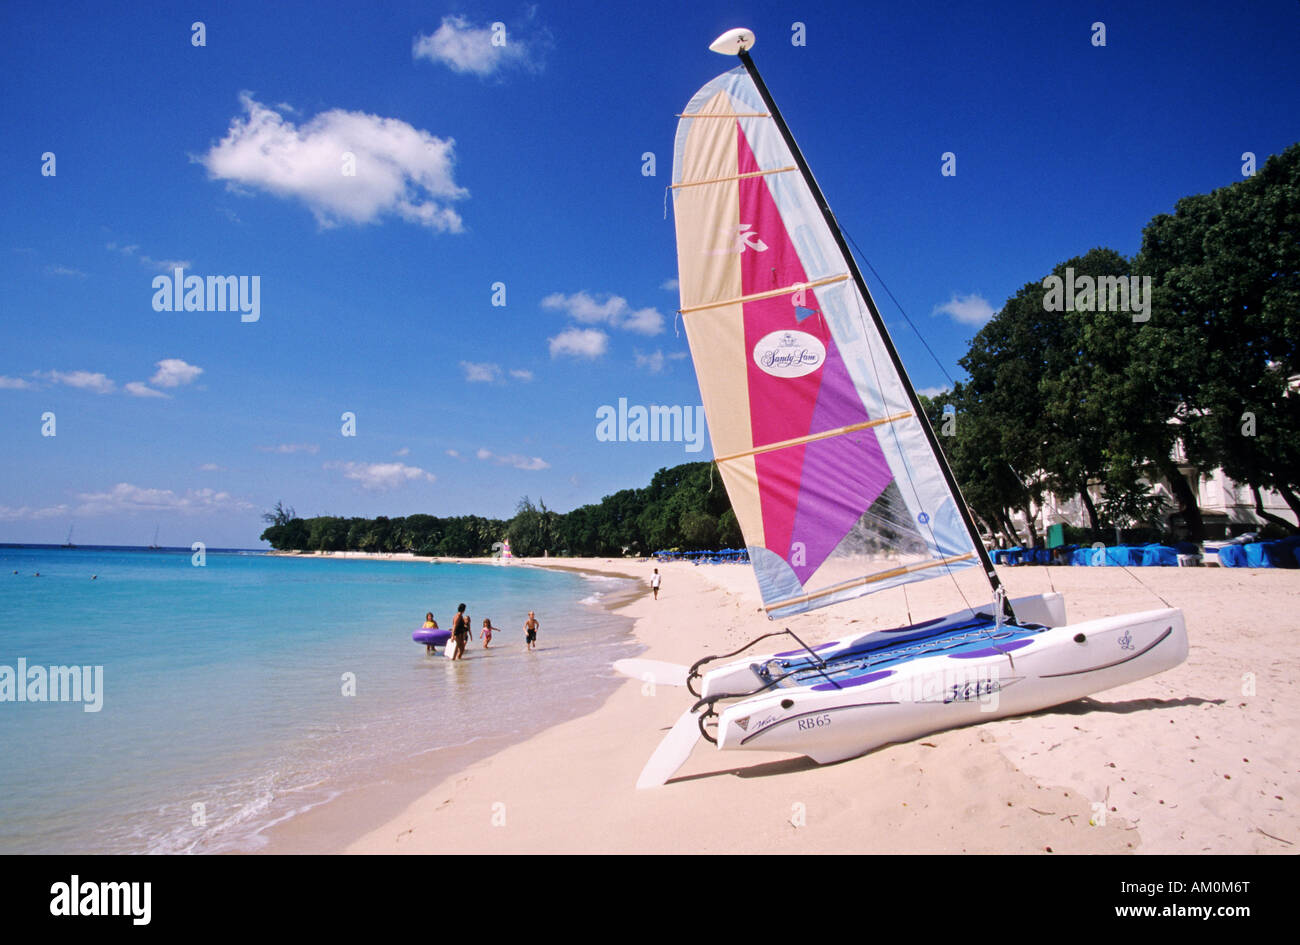 Barbados island, Saint James, beach of the Sandy Lane hotel - Stock Image